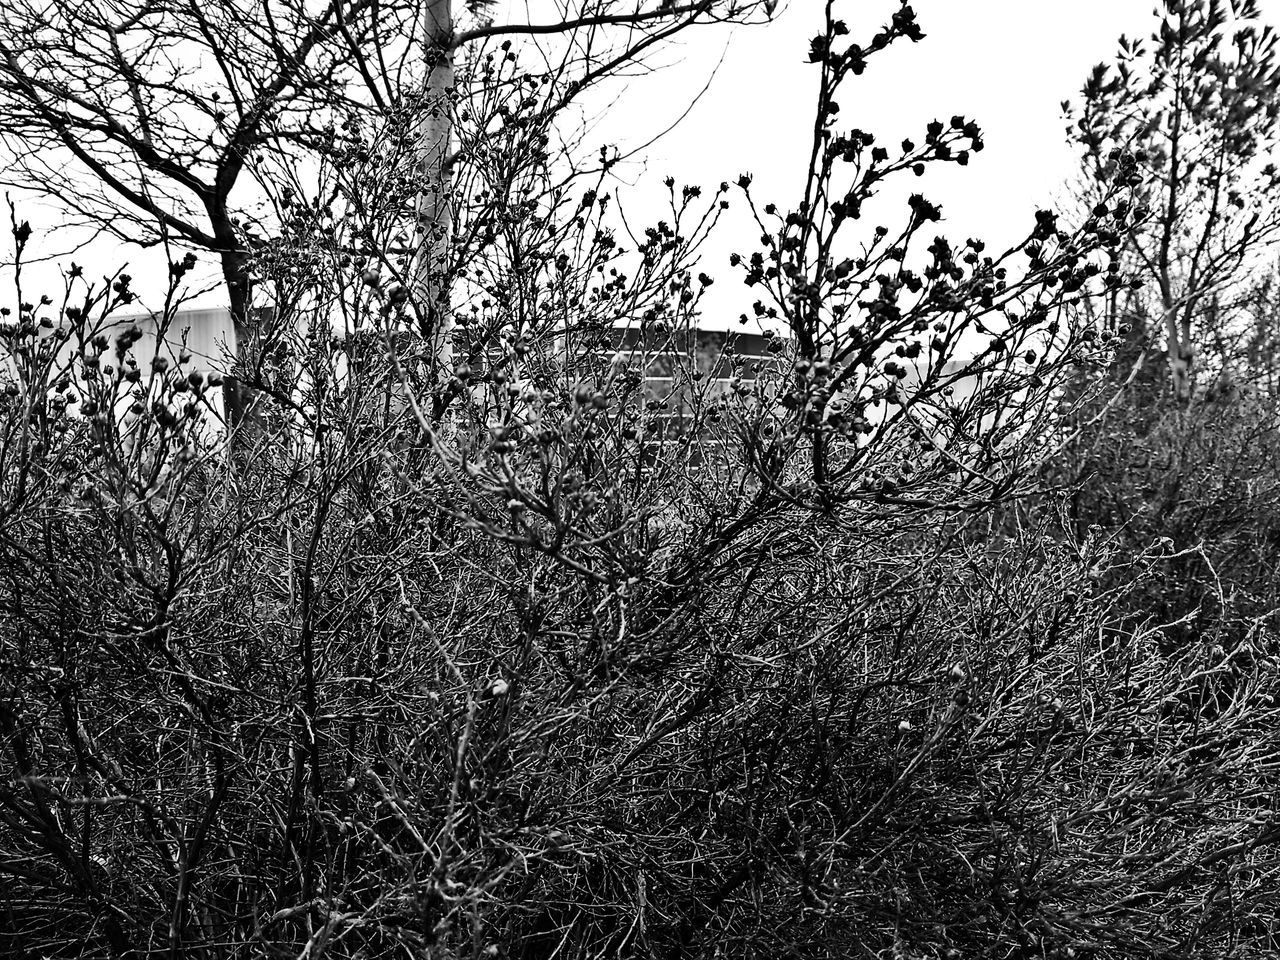 Taking Photos Learn And Shoot Black And White Shrubs Black And White Photography Black And White Collection  Black And White Nature Photography Shrubbery Winter Nature Outside Dead Treeporn Vaughan Canada